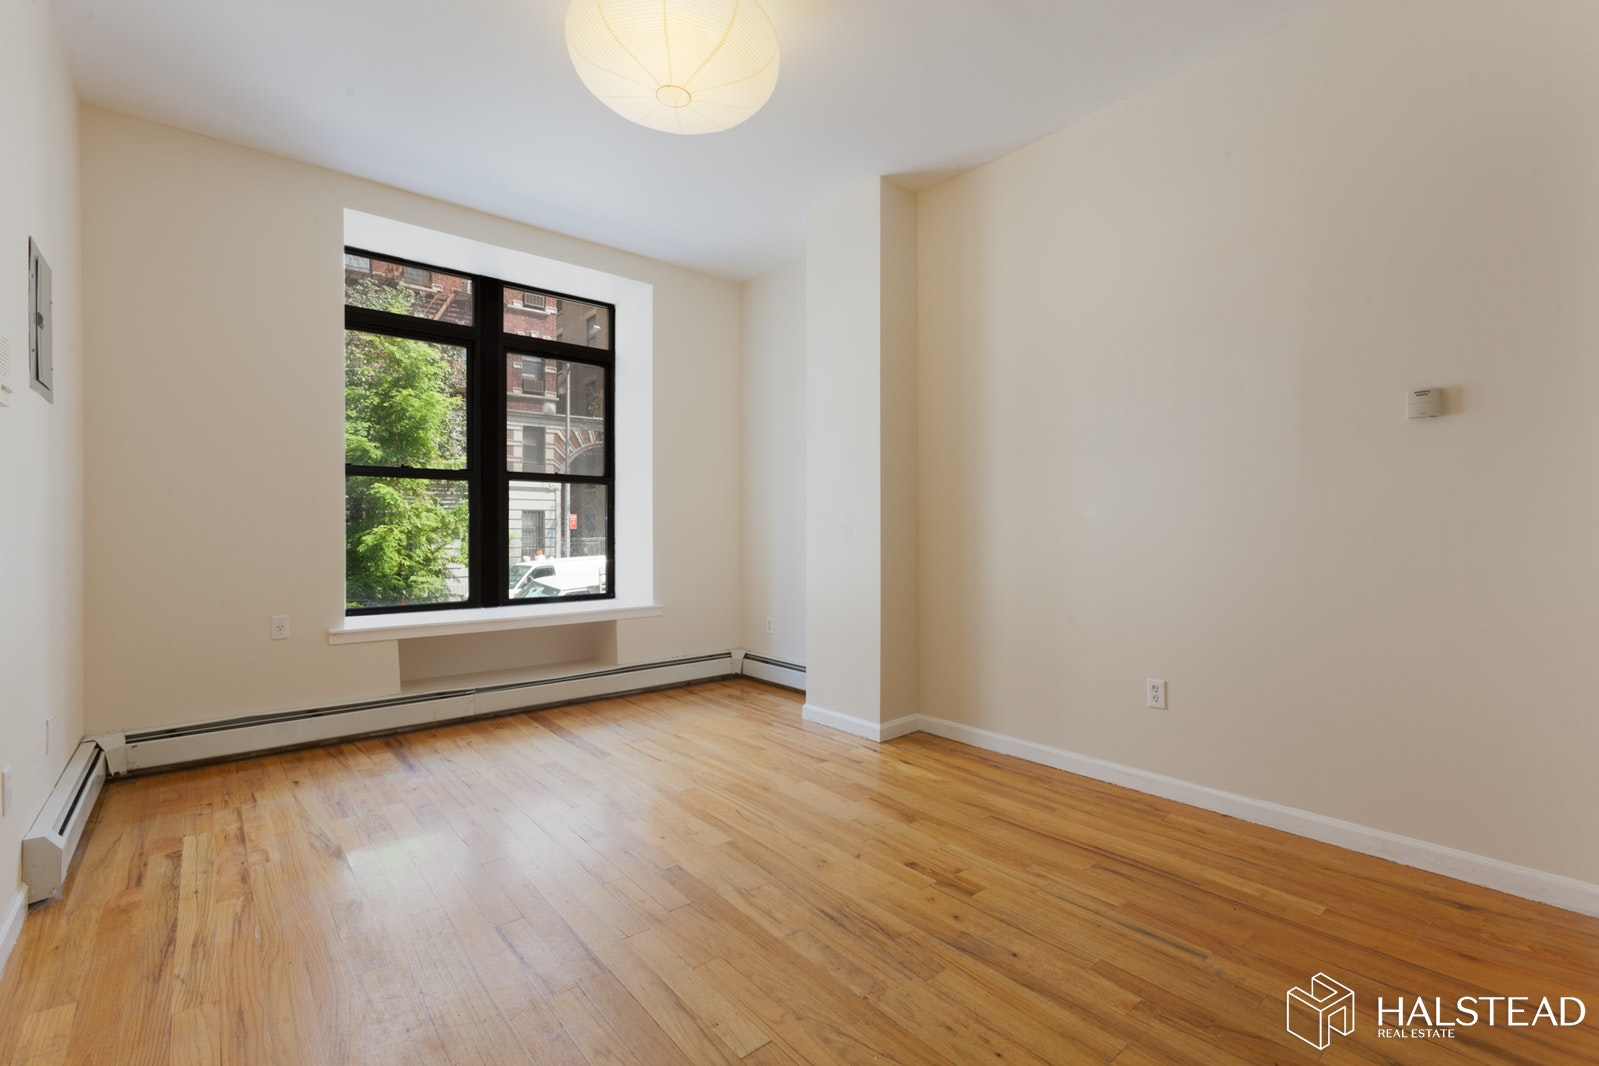 324 West 113th Street 1, Upper Manhattan, NYC, 10026, $3,250, Rented Property, Halstead Real Estate, Photo 1